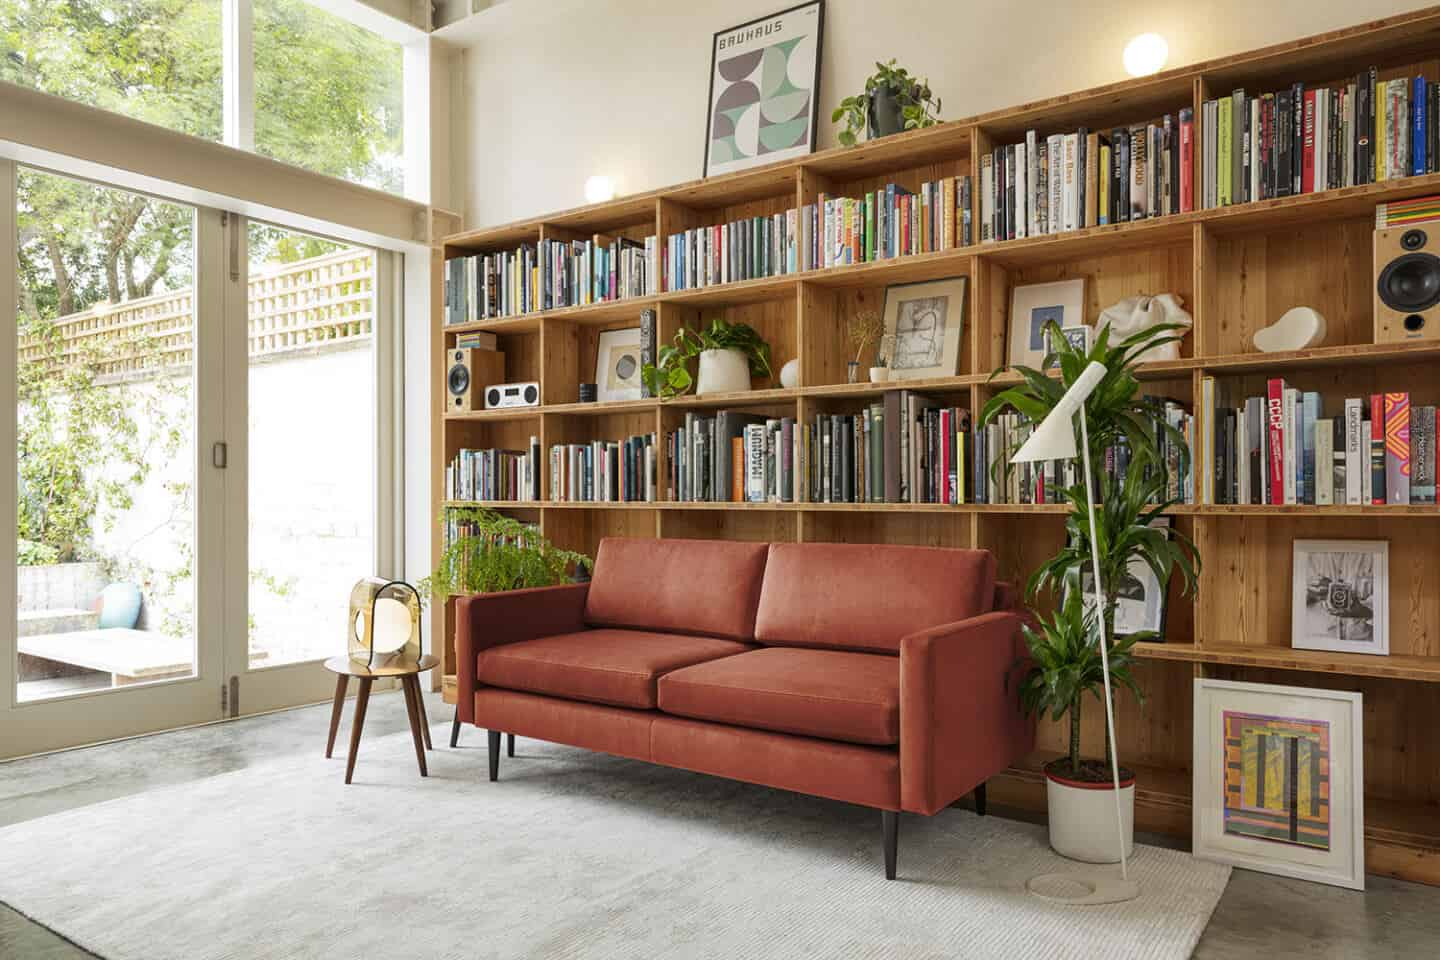 A red sofa from Swyft Home on a grey rug, positioned next to a window and in front of a large wooden bookcase